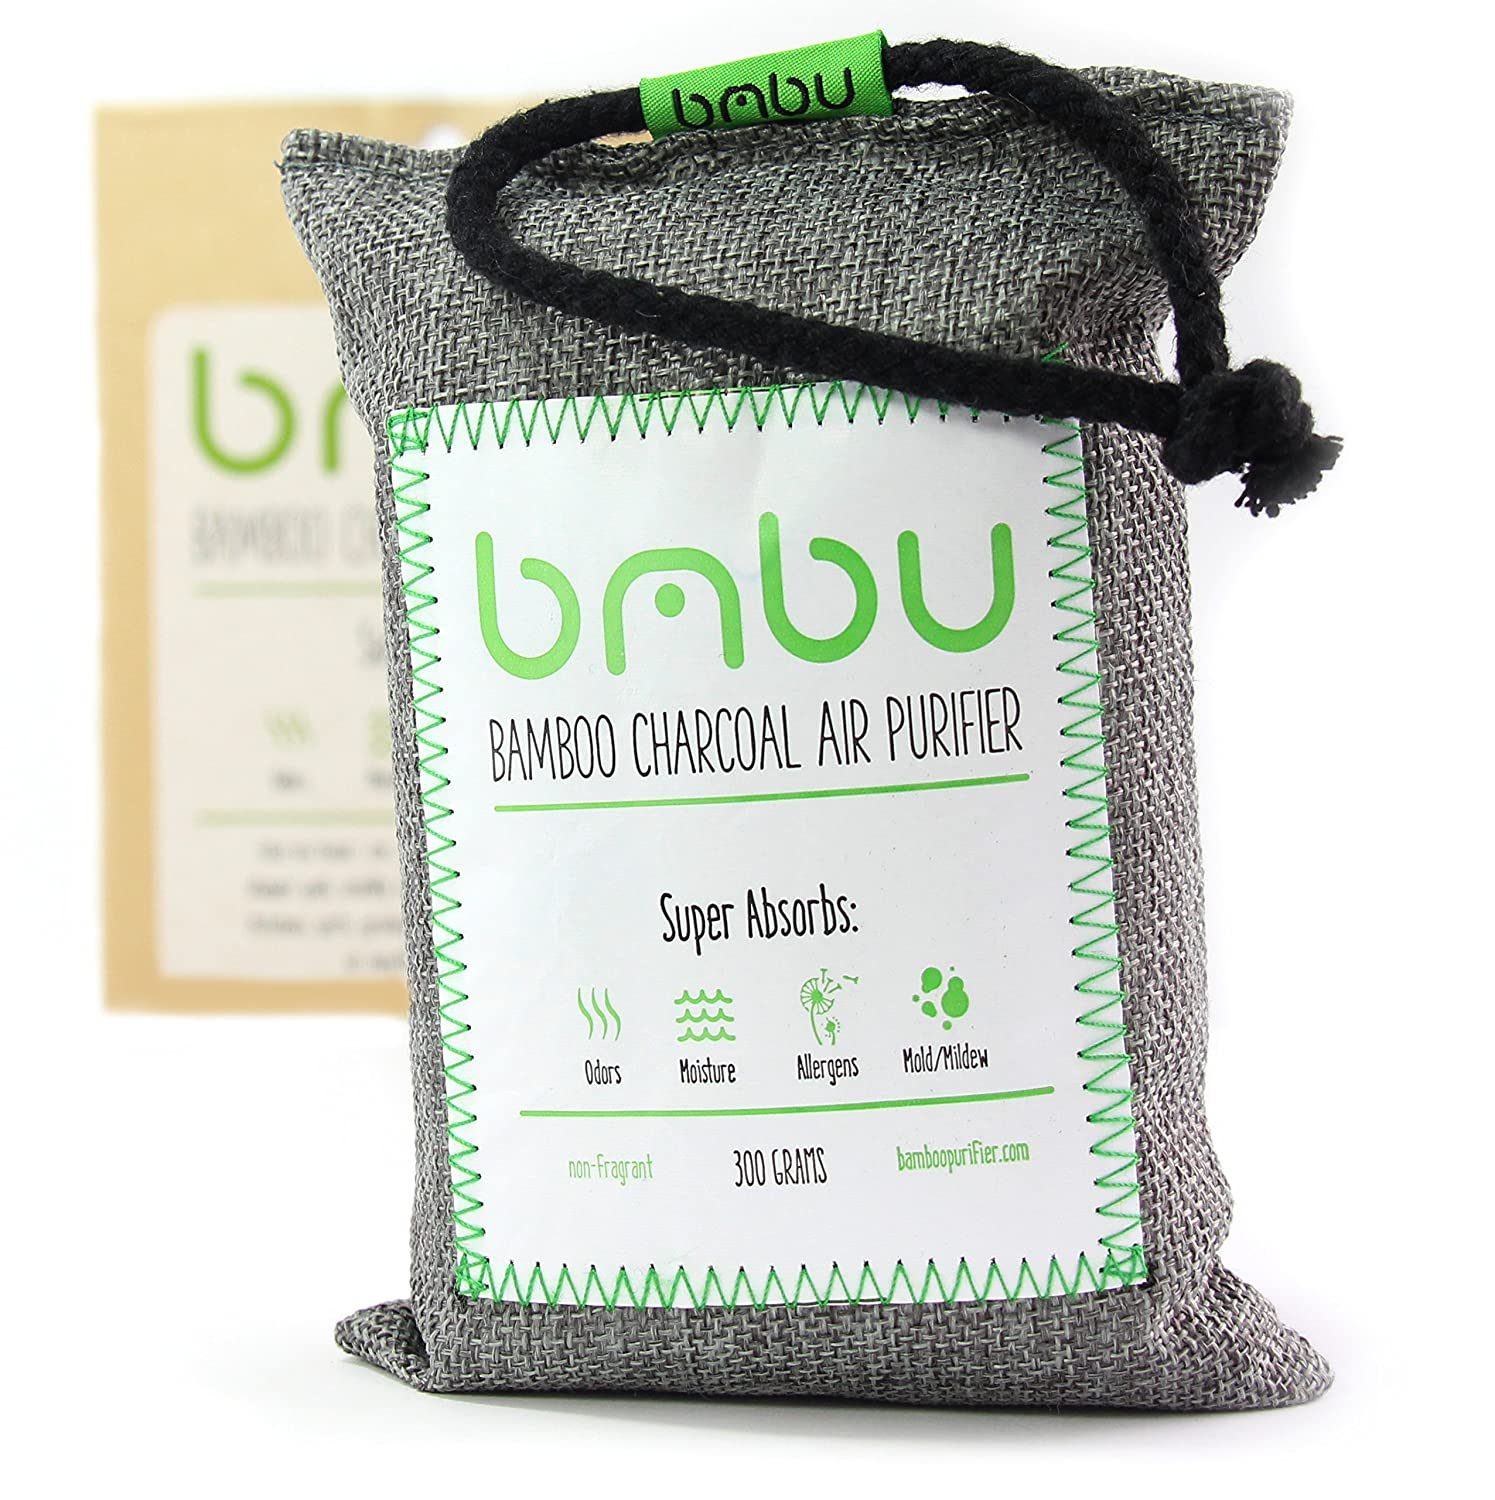 bmbu Bamboo Charcoal Car Deodorizer/Car Freshener Bag - Remove Odor, Control Moisture & Purifier Your Car, Closet, Bathroom, Kitchen, Litter Box - Non-Fragrant Alternative to Sprays (1) Standard Modern